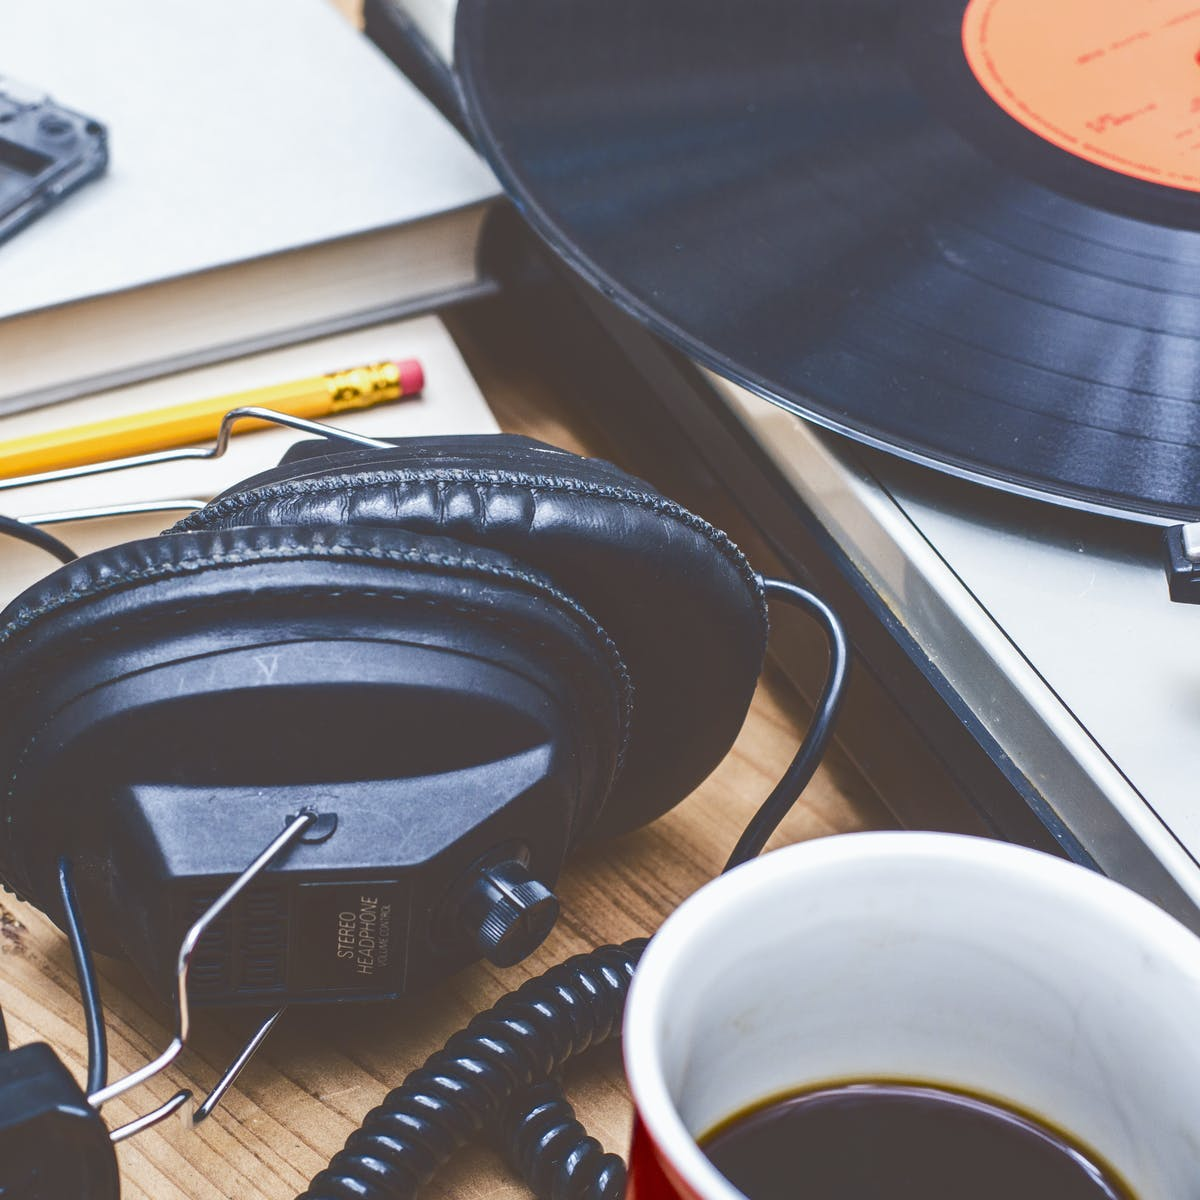 The environmental impact of music: digital, records, CDs